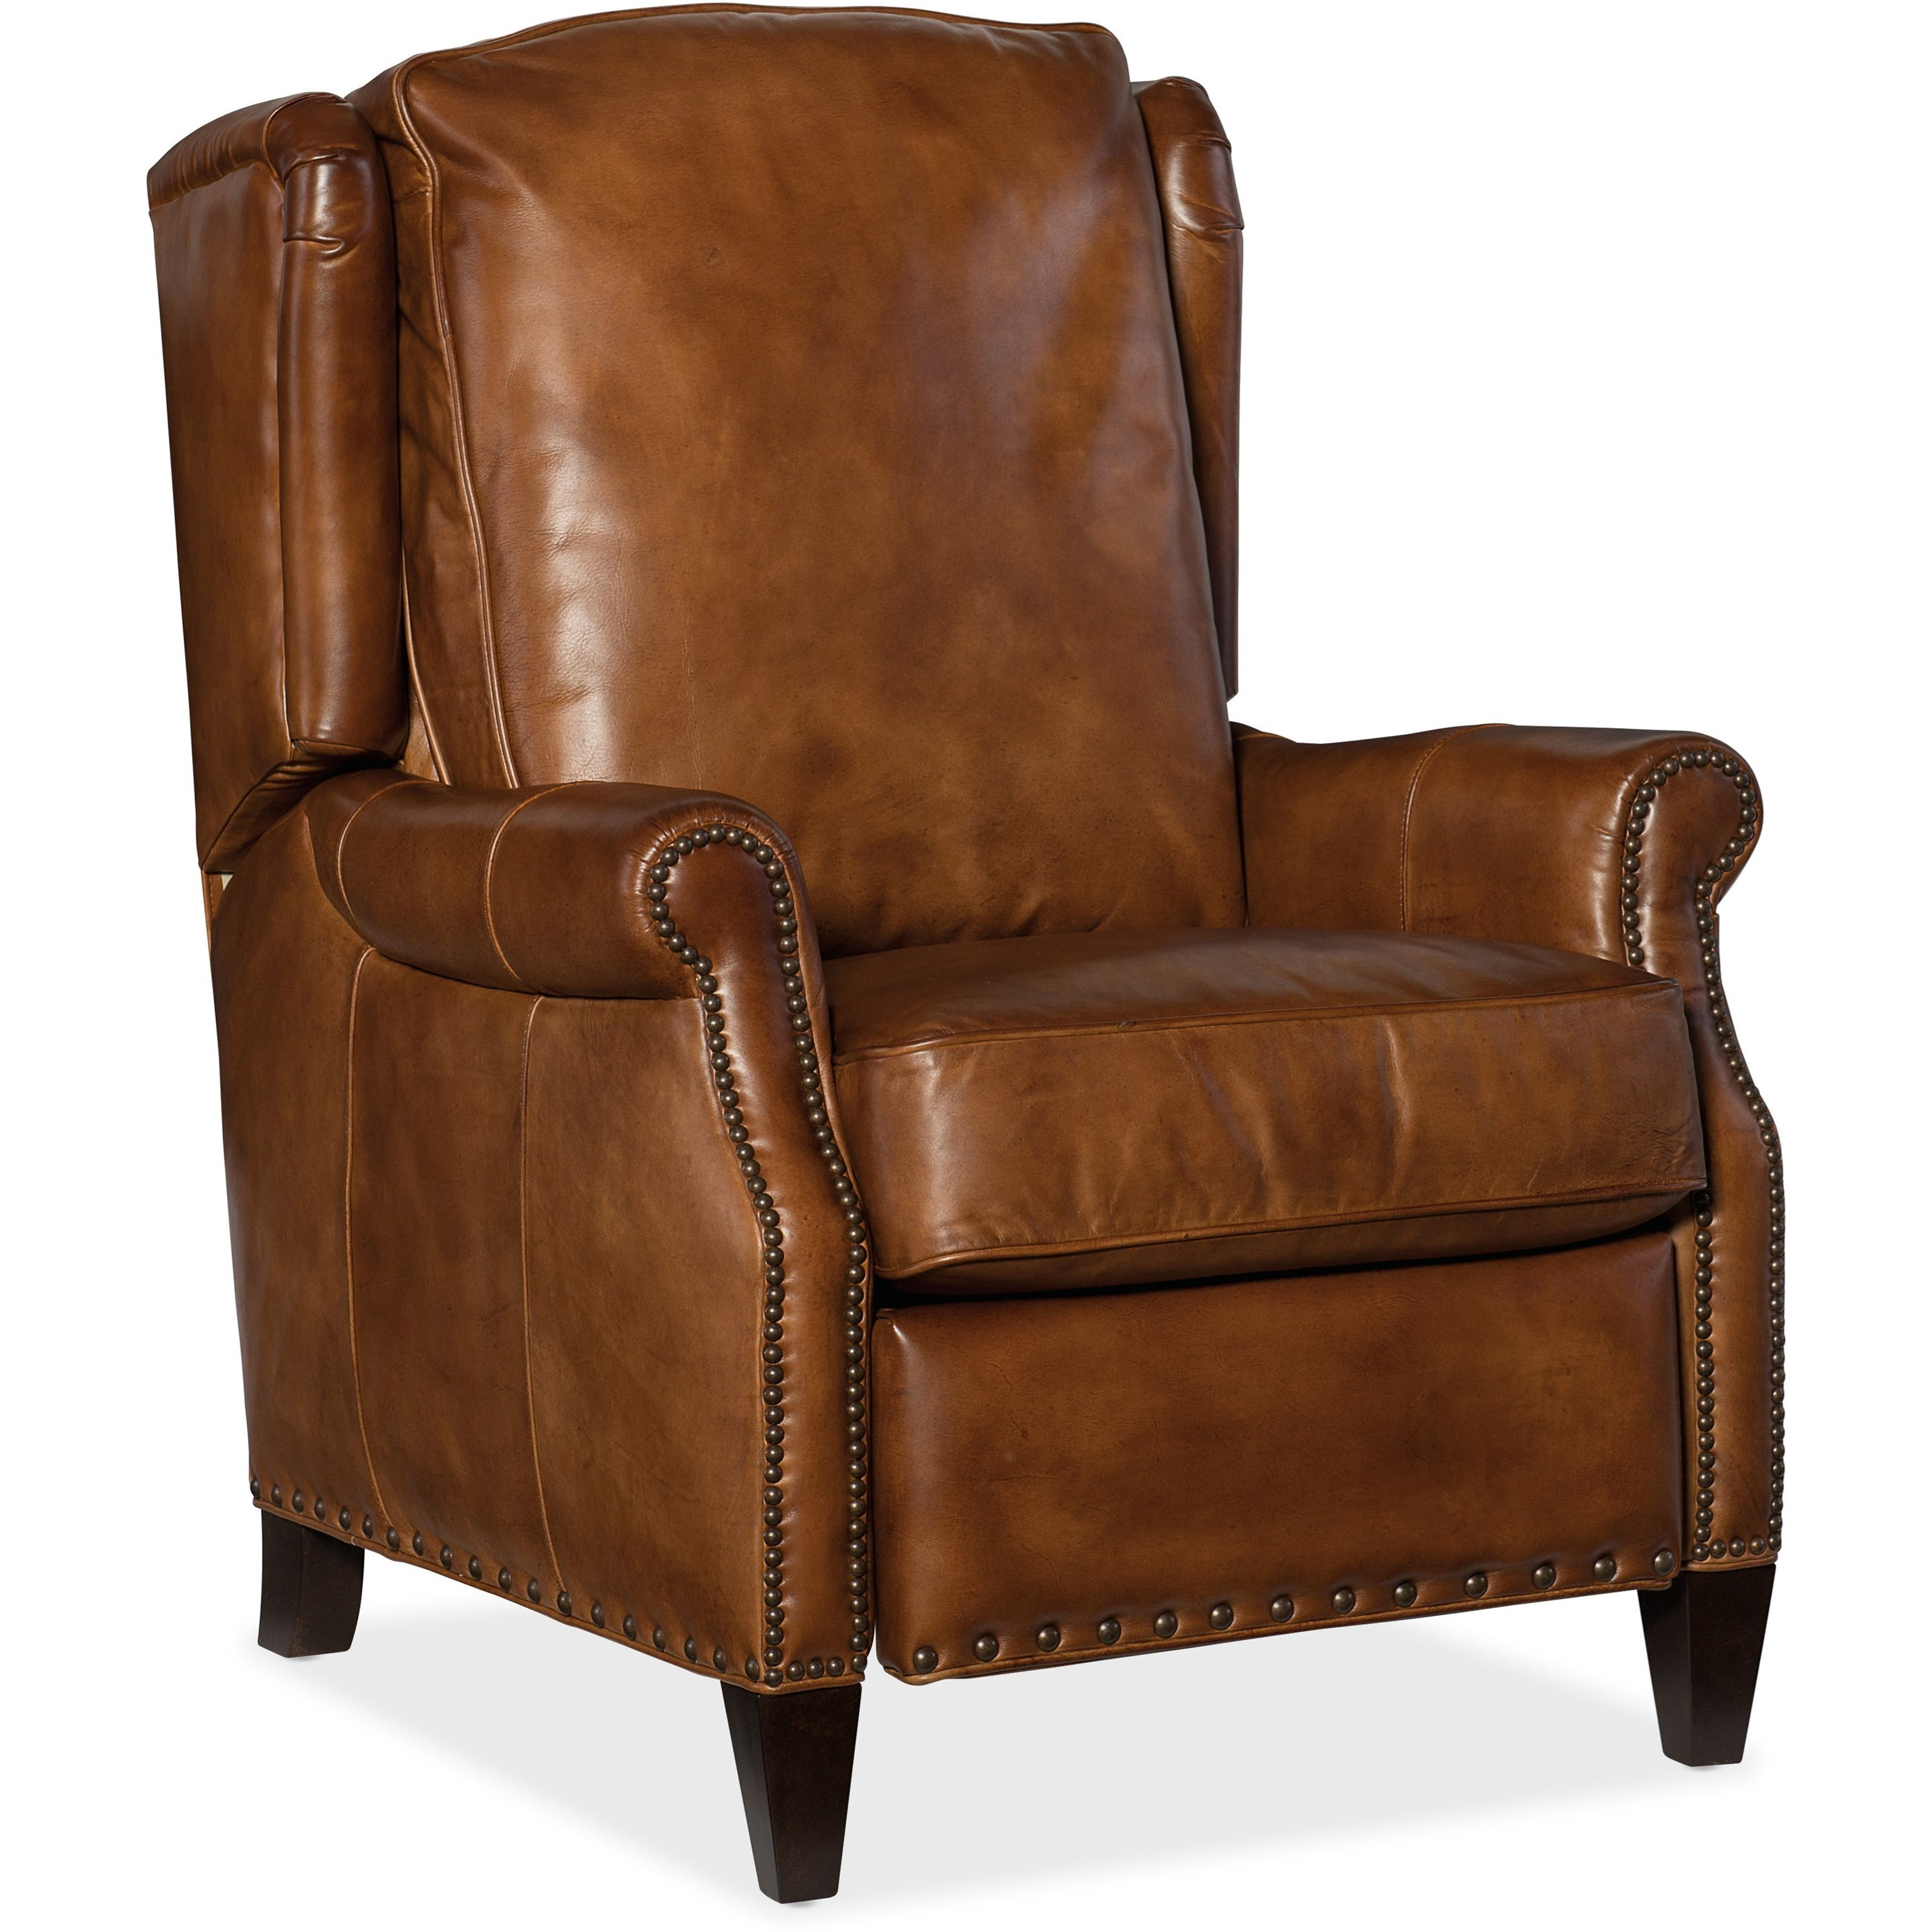 Merveilleux Silas Traditional Leather Recliner With Nailhead Trim